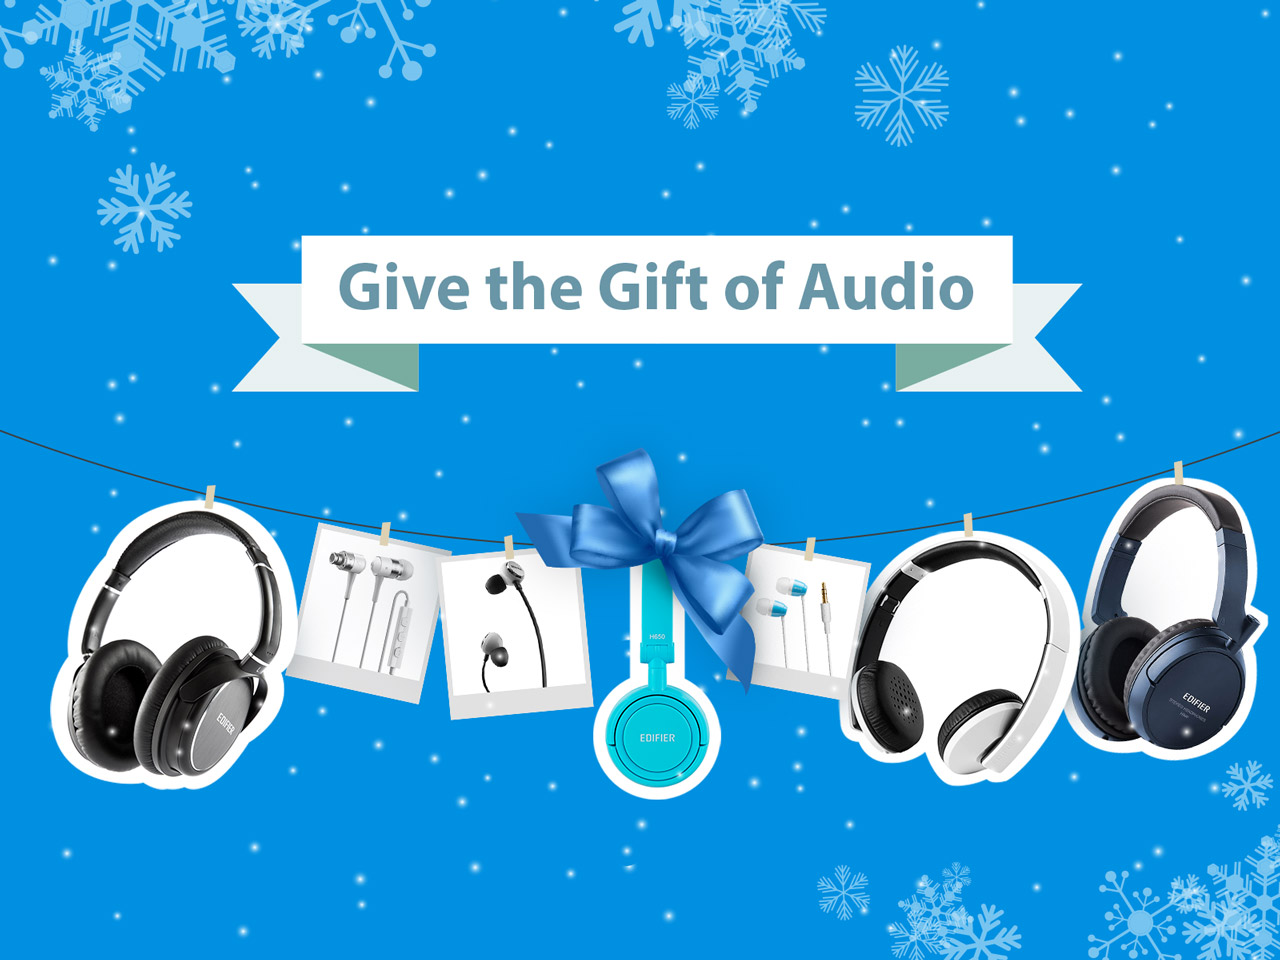 Give the Gift of Audio This Holiday Season